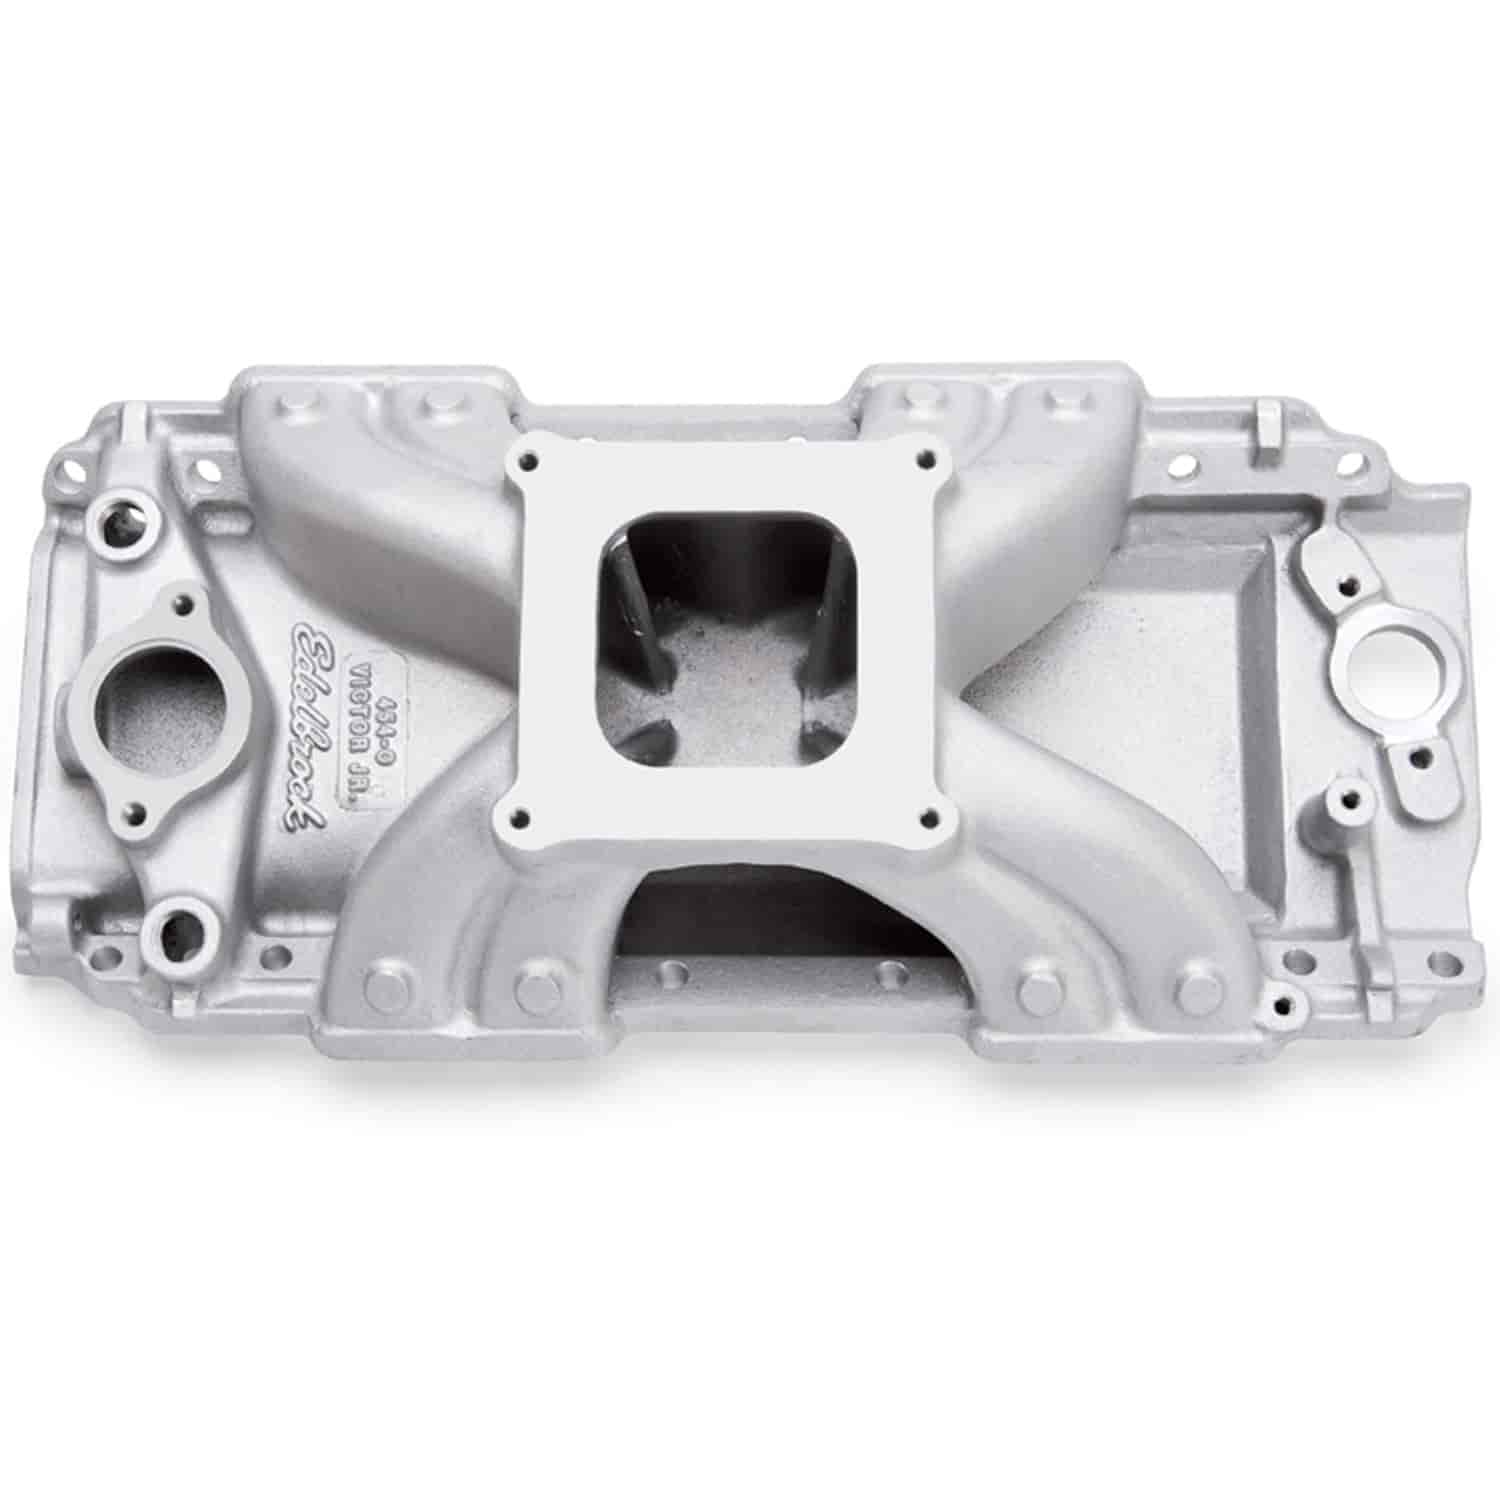 Edelbrock Victor Jr  454-O Intake Manifold Big Block Chevy with  1975-Earlier large oval port heads